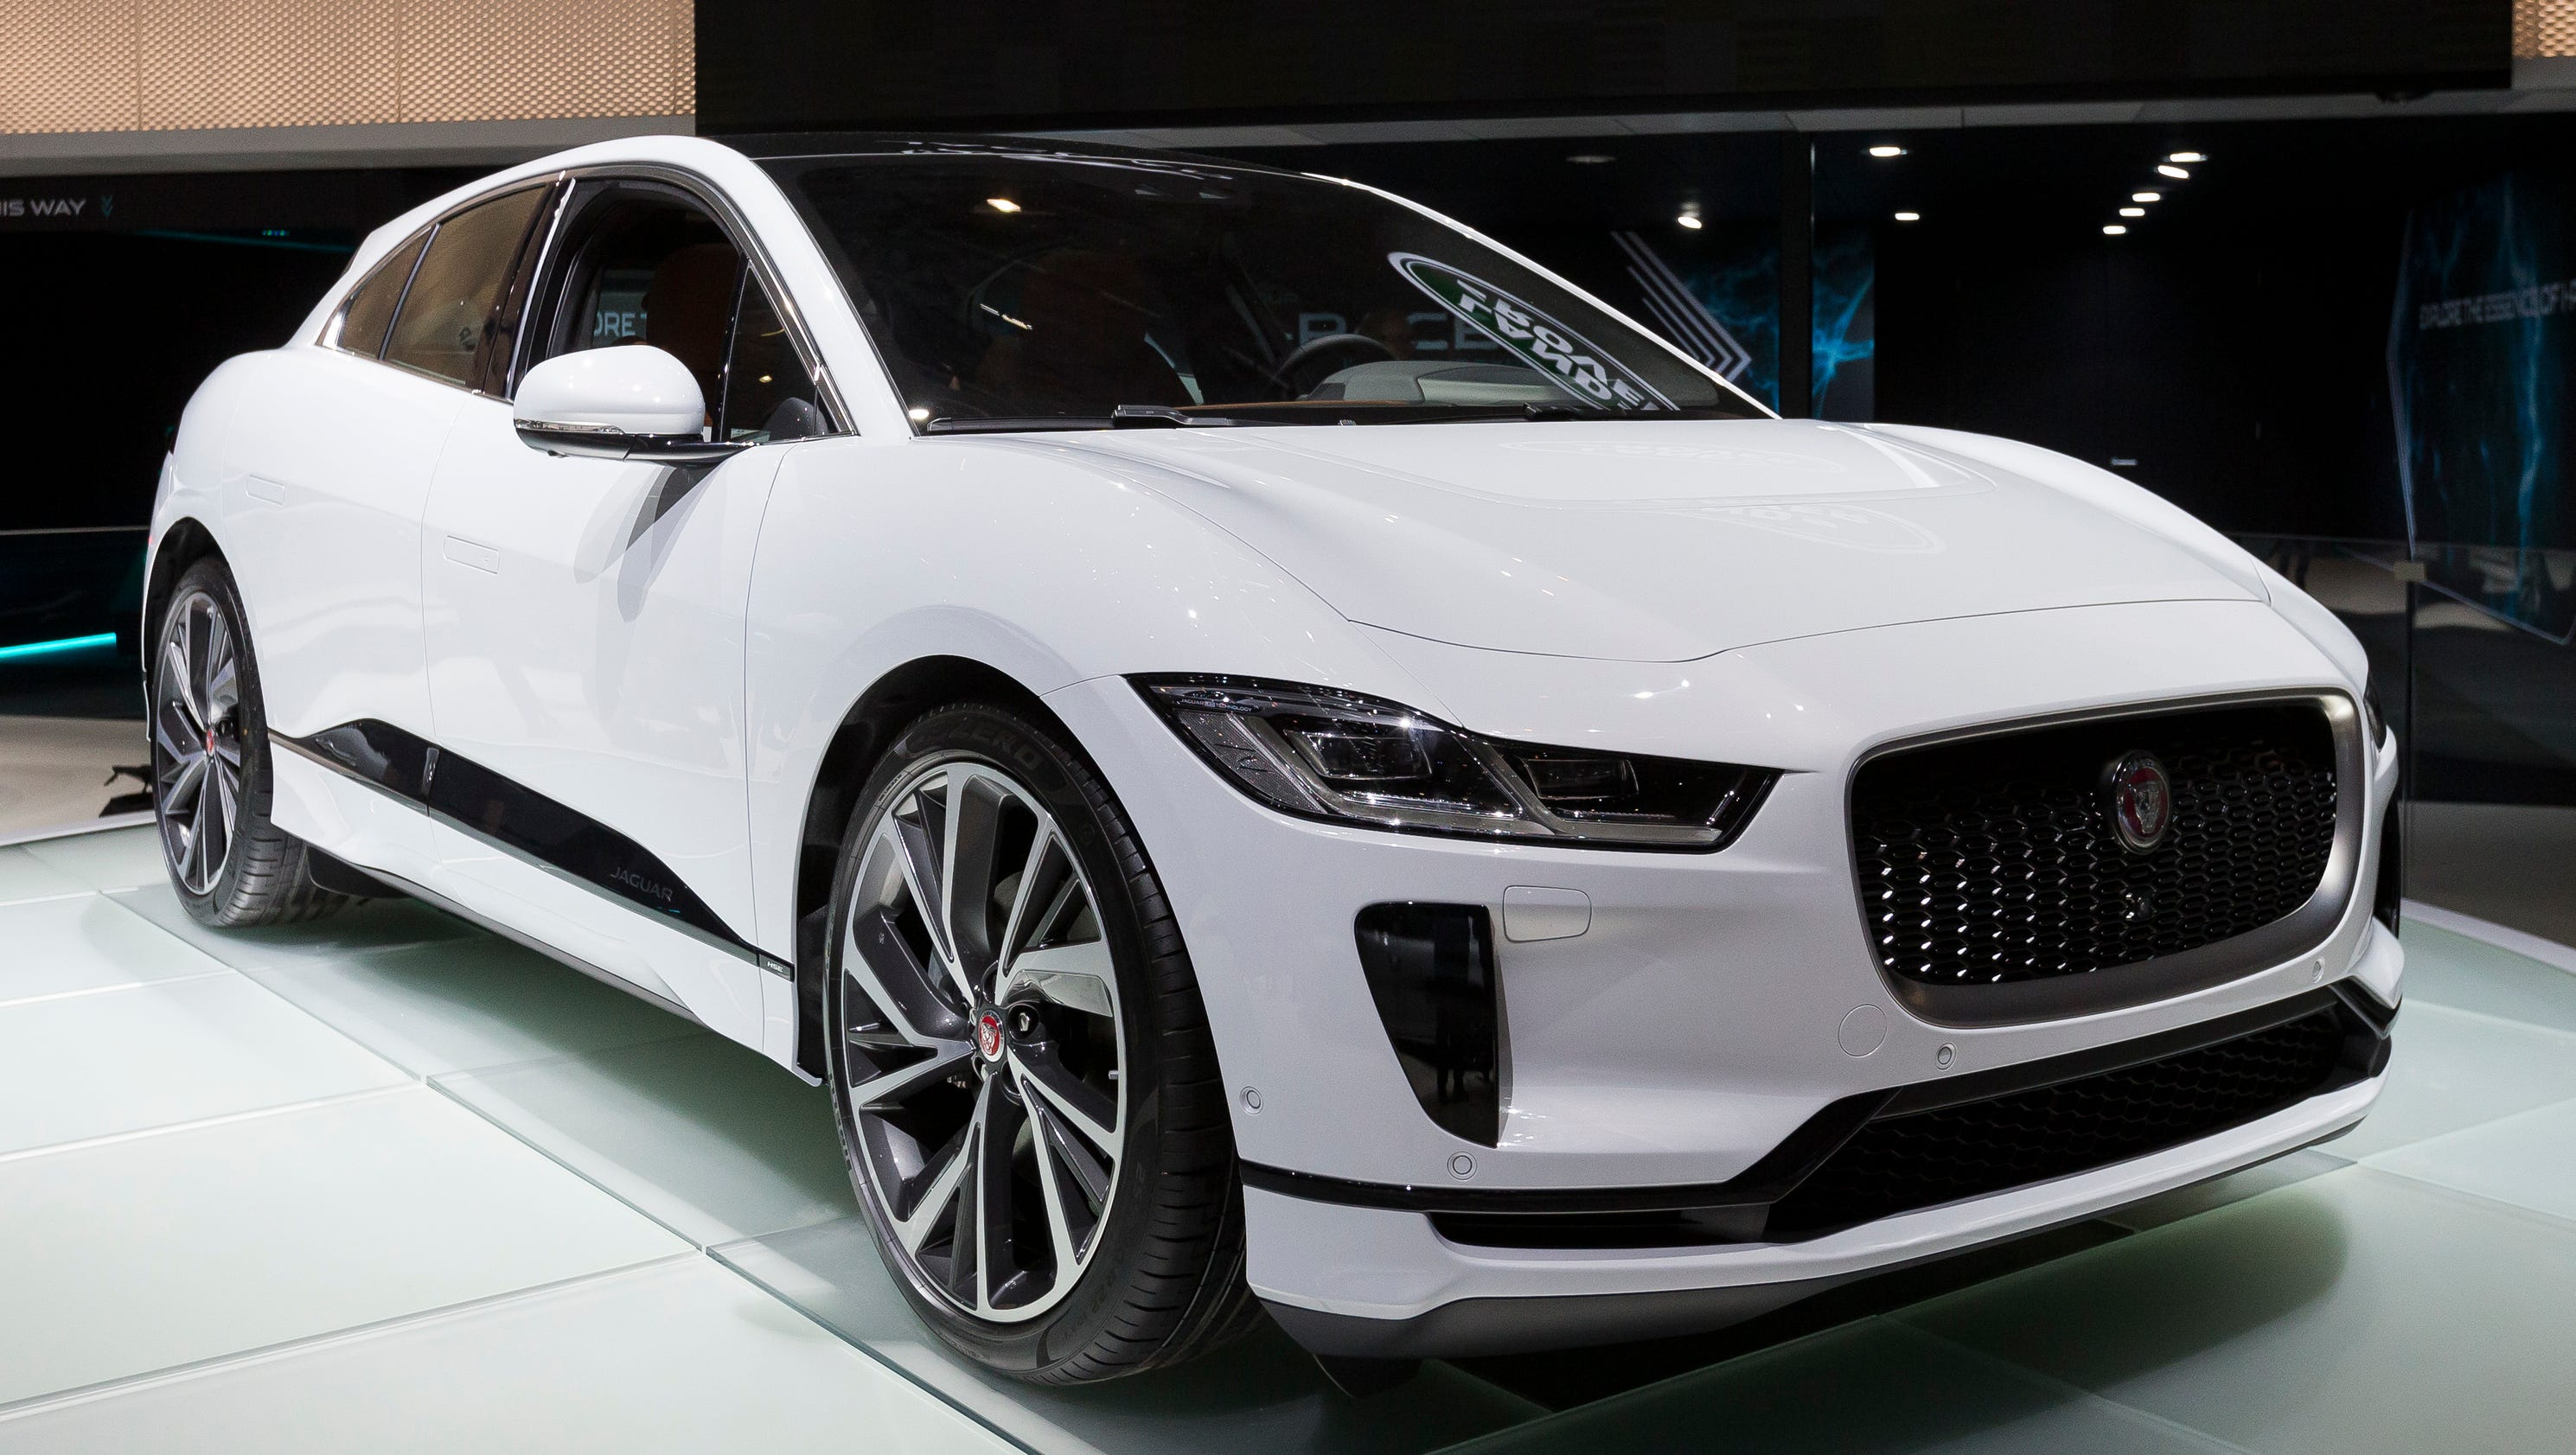 car discovery jaguar reviews the week sport prices list price and specs land uk rover